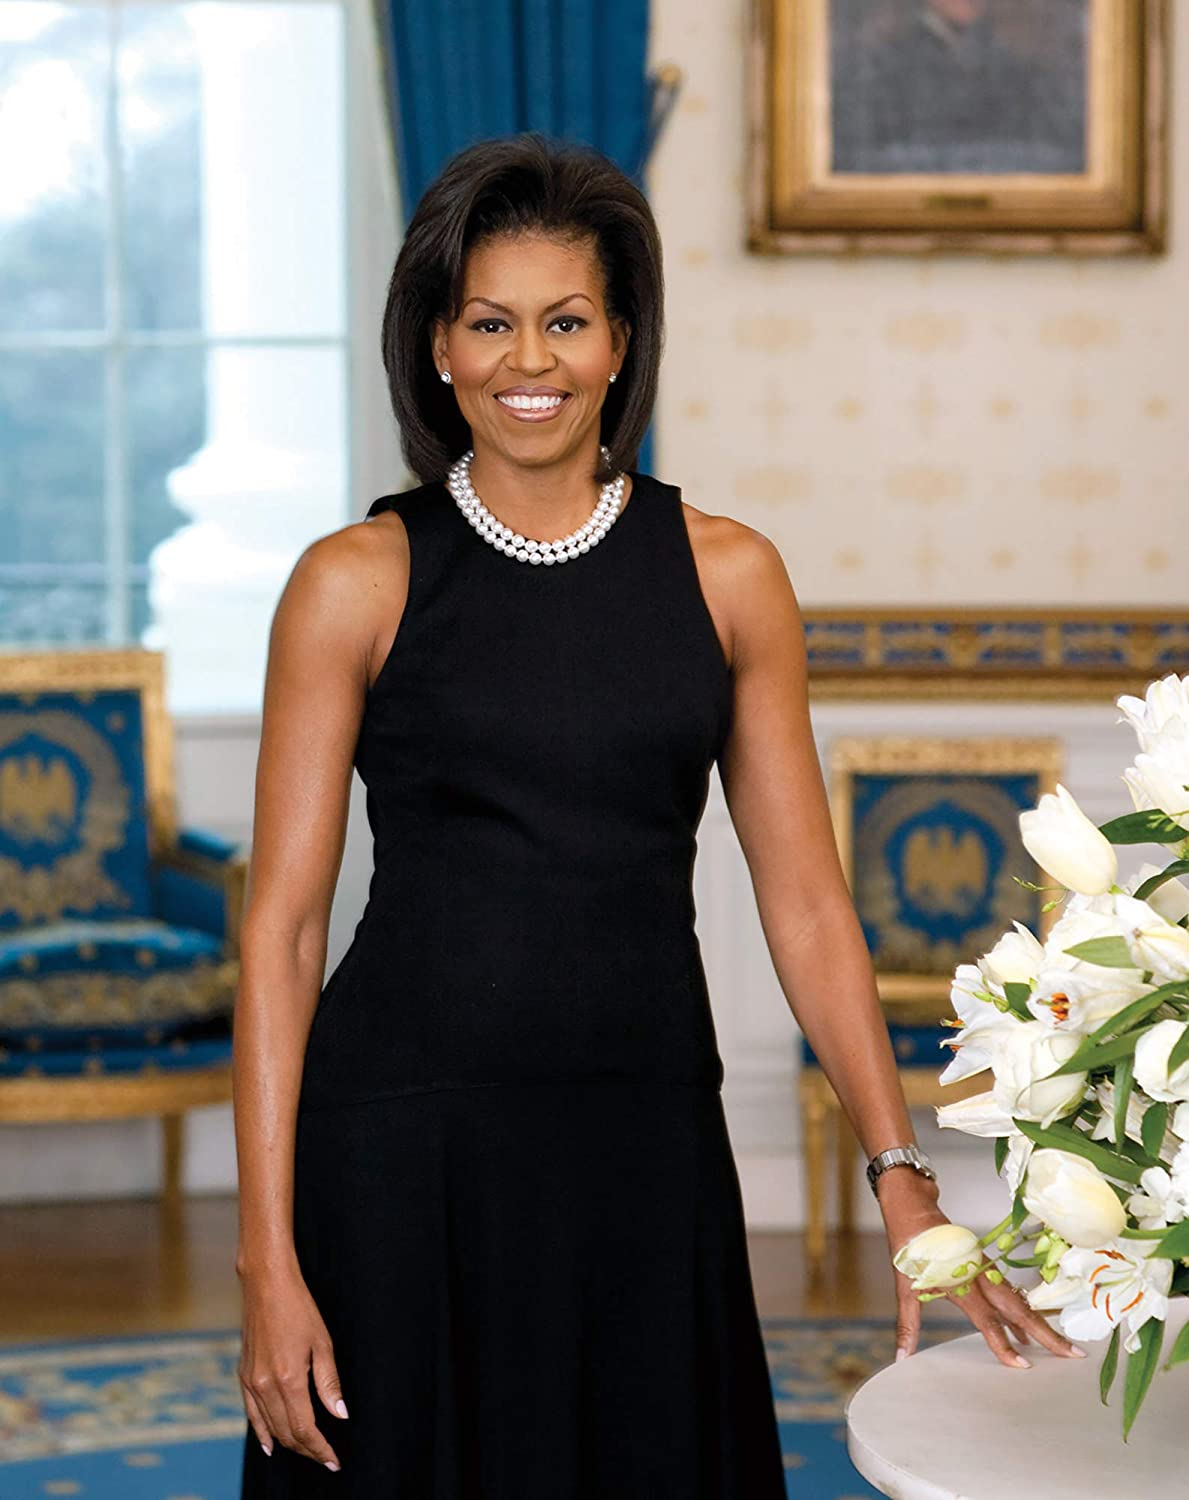 Michelle Obama Photograph - Historical Artwork from 2009 - (8 x 10) - Matte